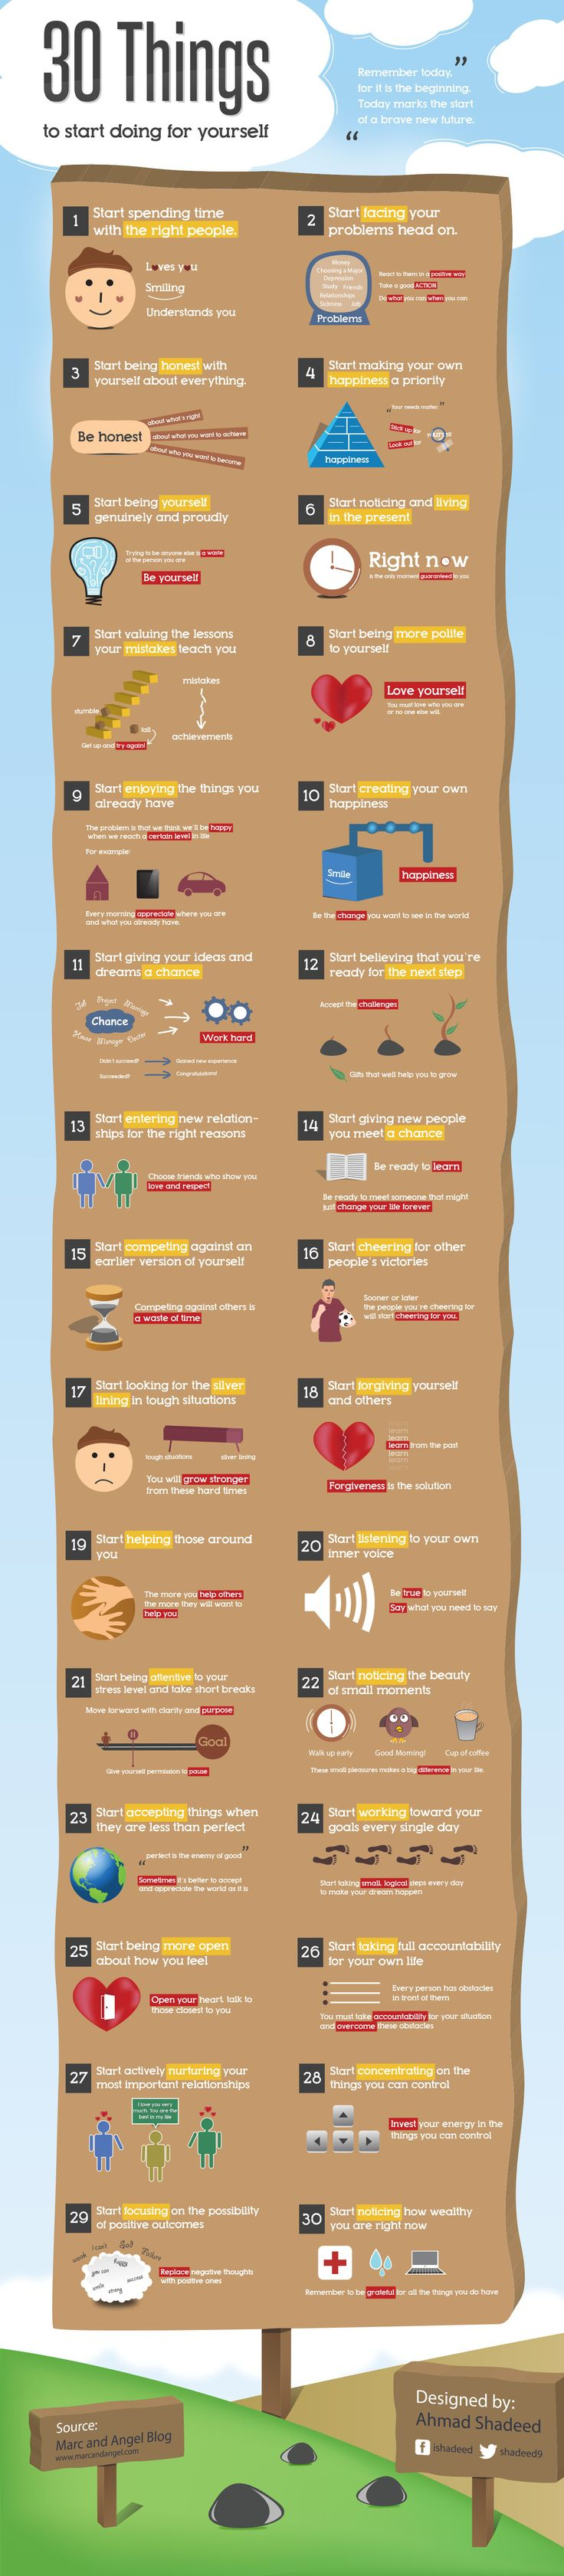 Here are 30 things you can do for yourself to improve your life.